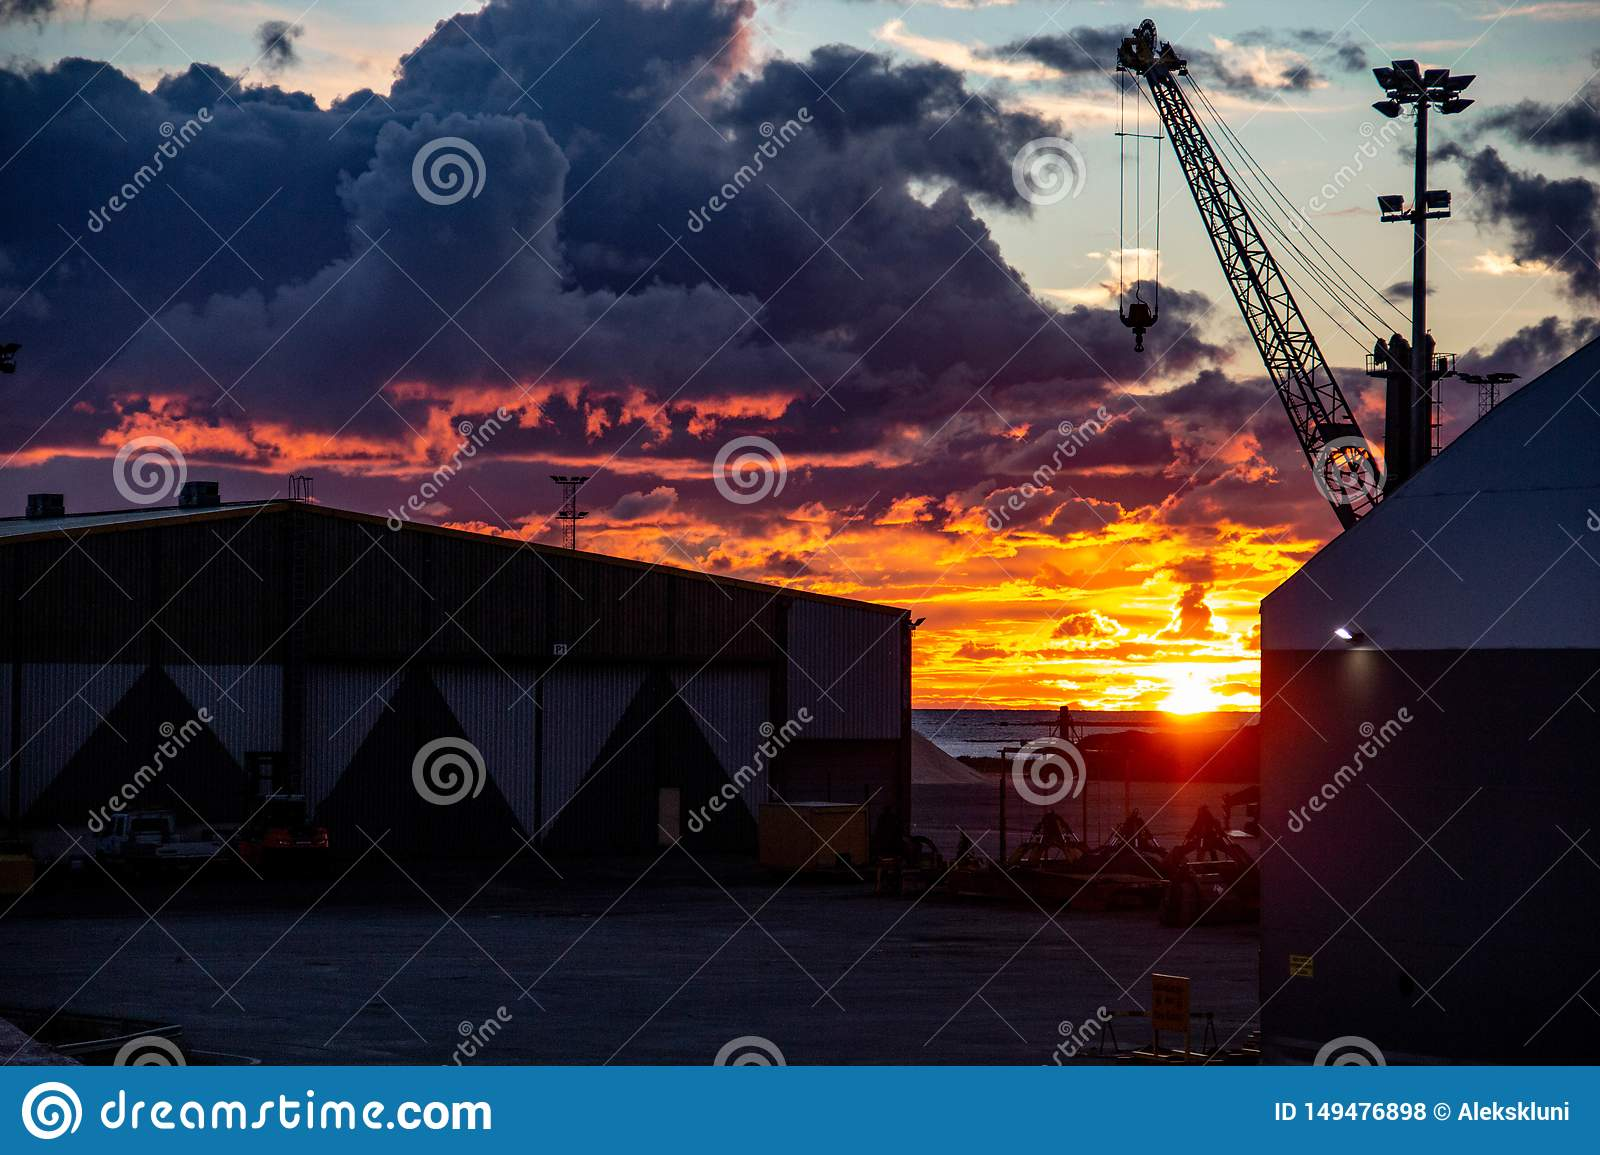 Beautiful sunset with fiery clouds in North Finland. Port area.